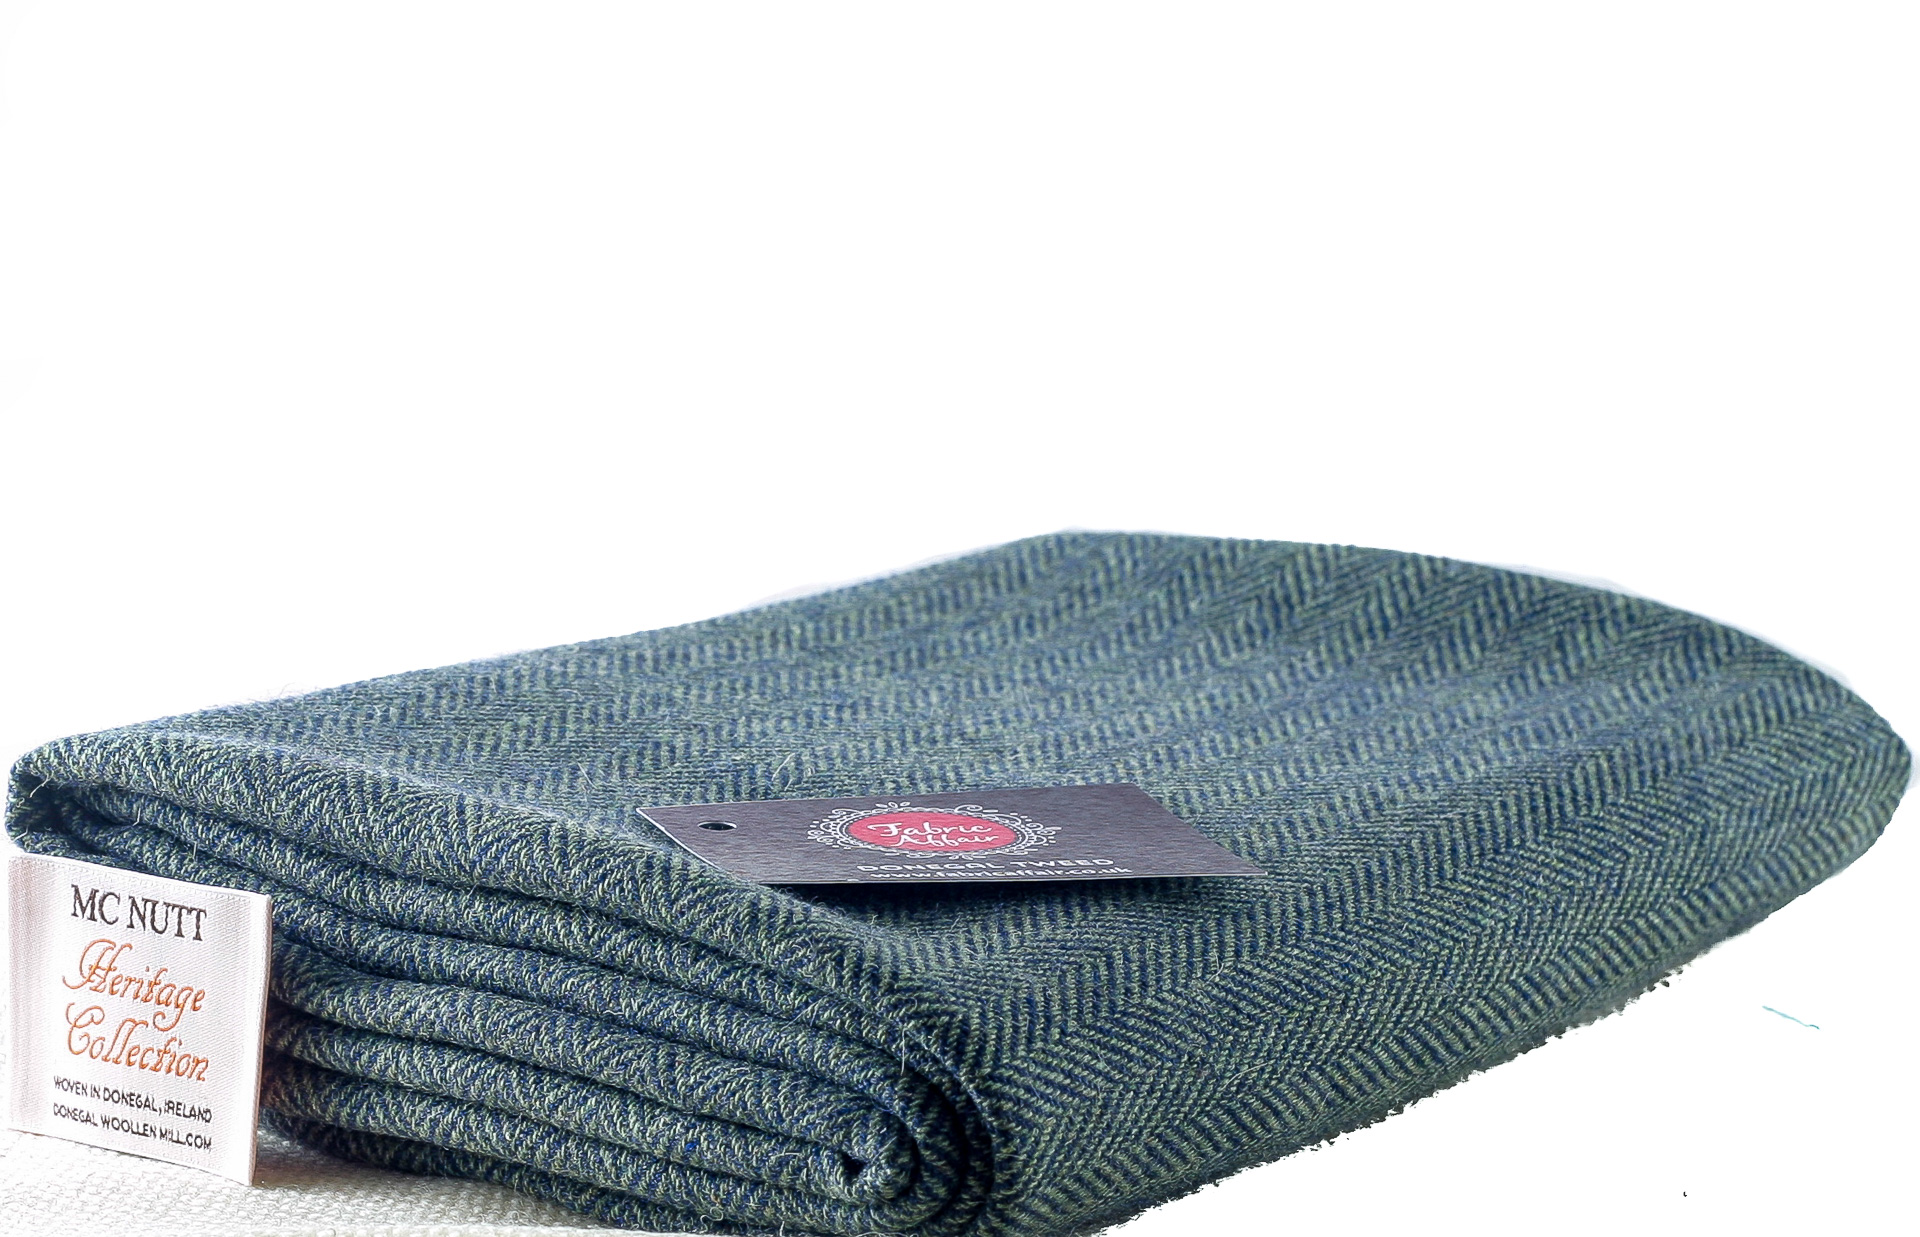 Donegal Tweed by Fabric Affair: Heritage Collection, Herringbone Blue/Pale Green.